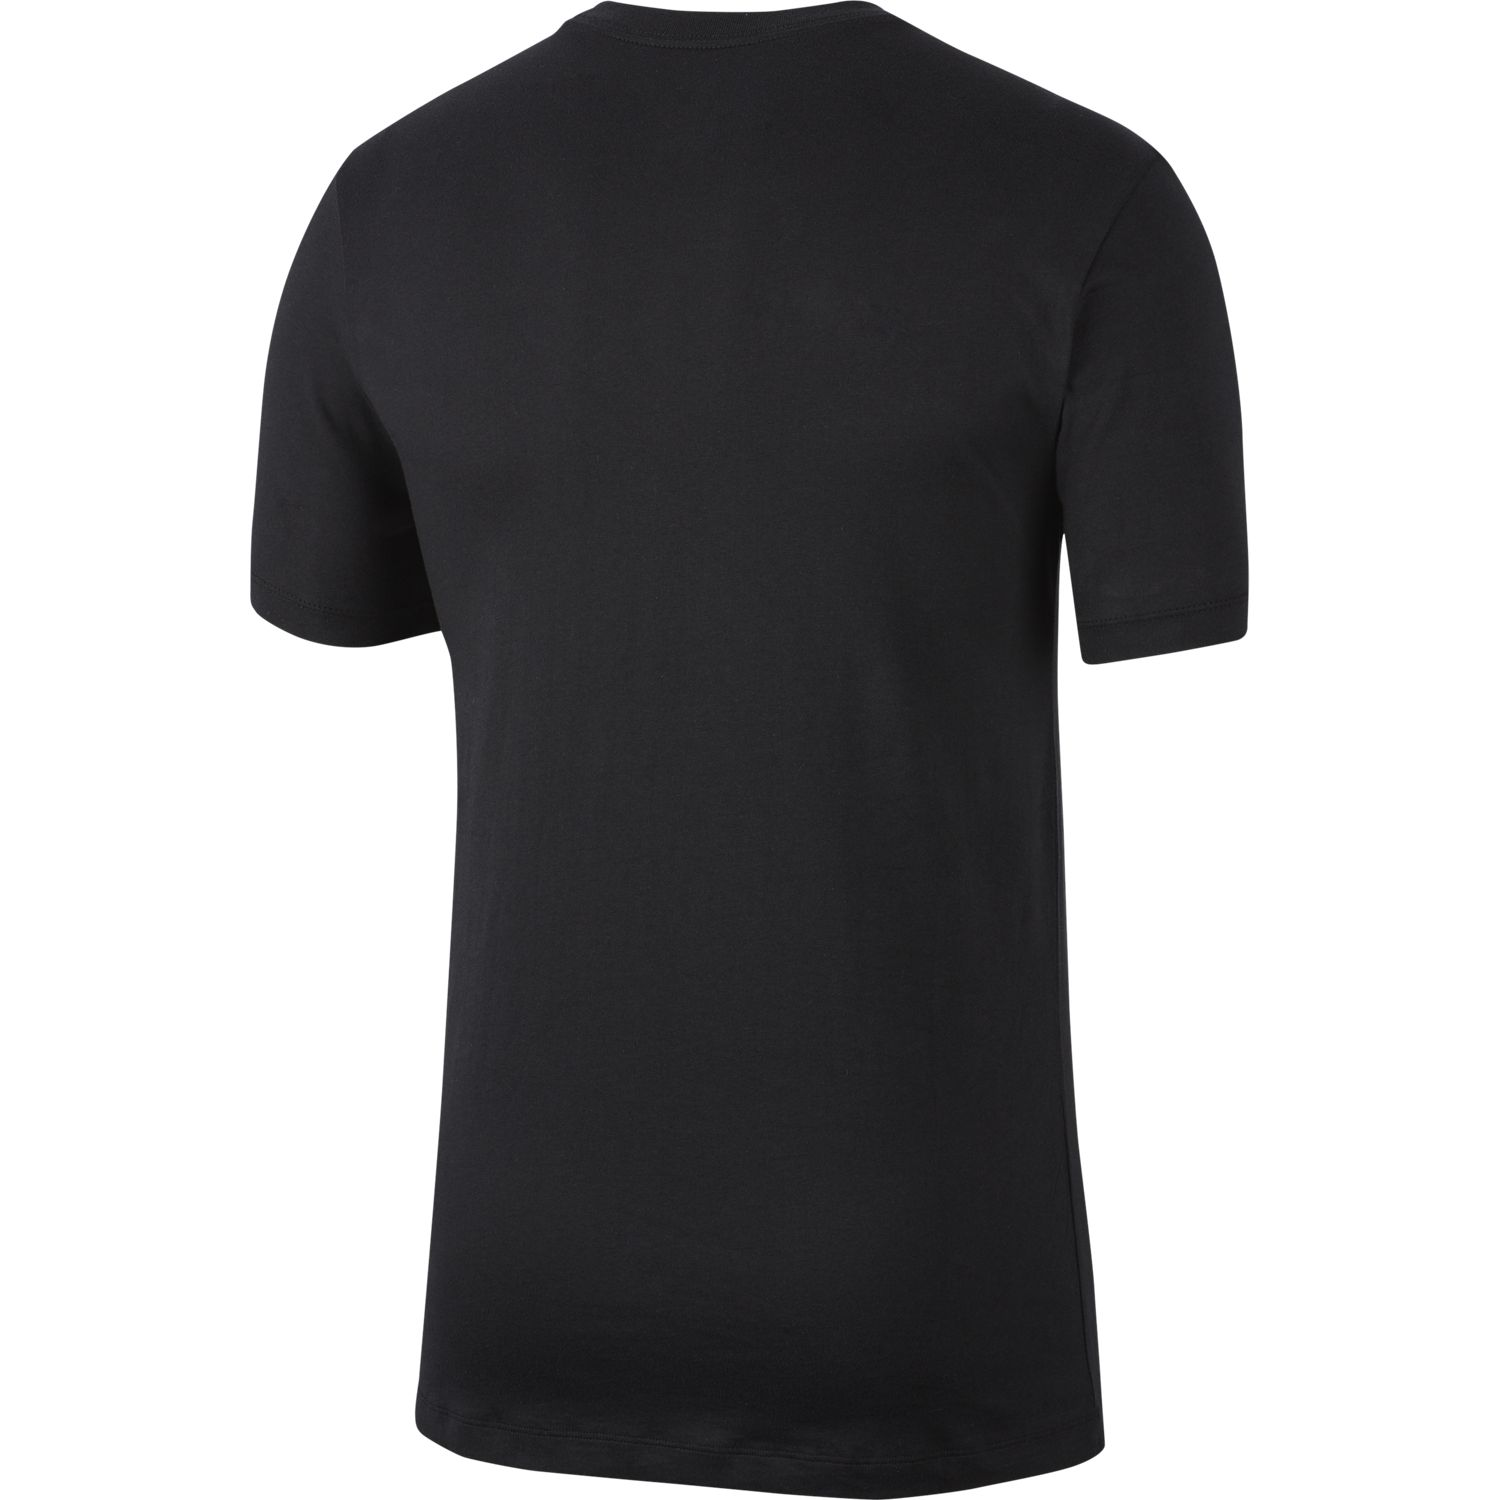 good service online for sale for whole family Sportswear T-Shirt